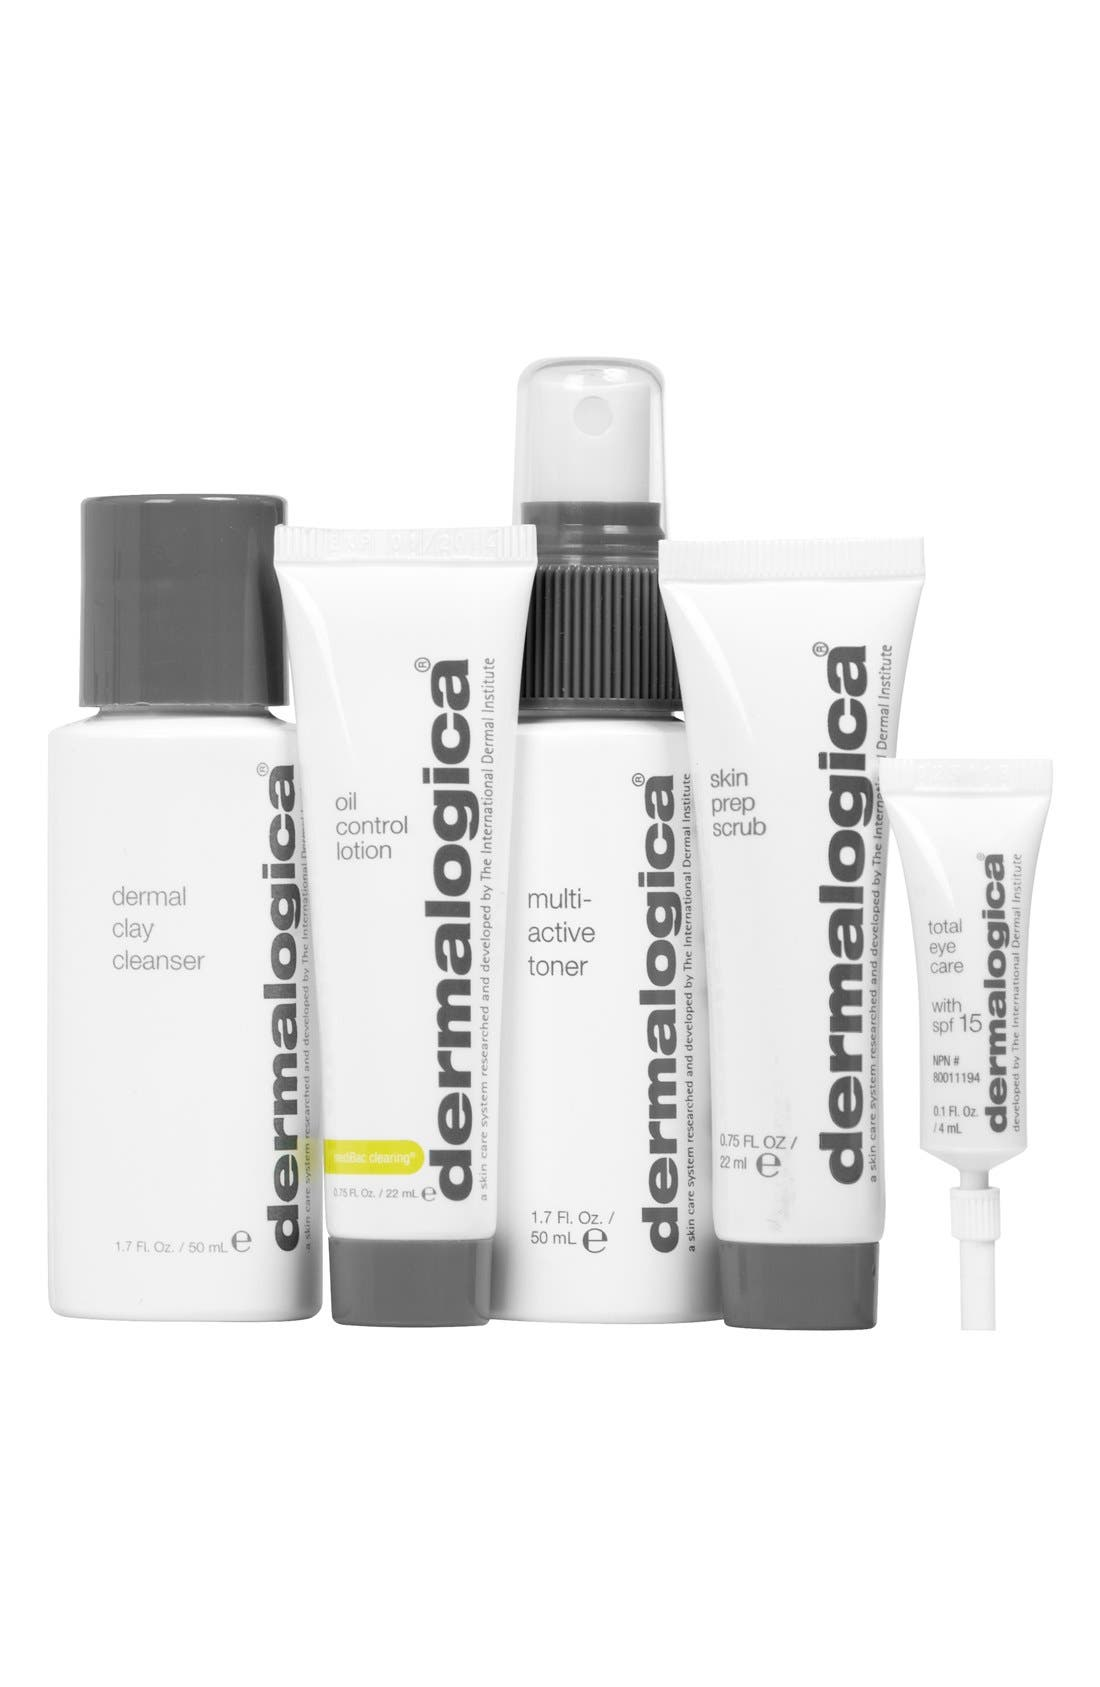 dermalogica® Skin Kit for Oily Skin ($68.50 Value)